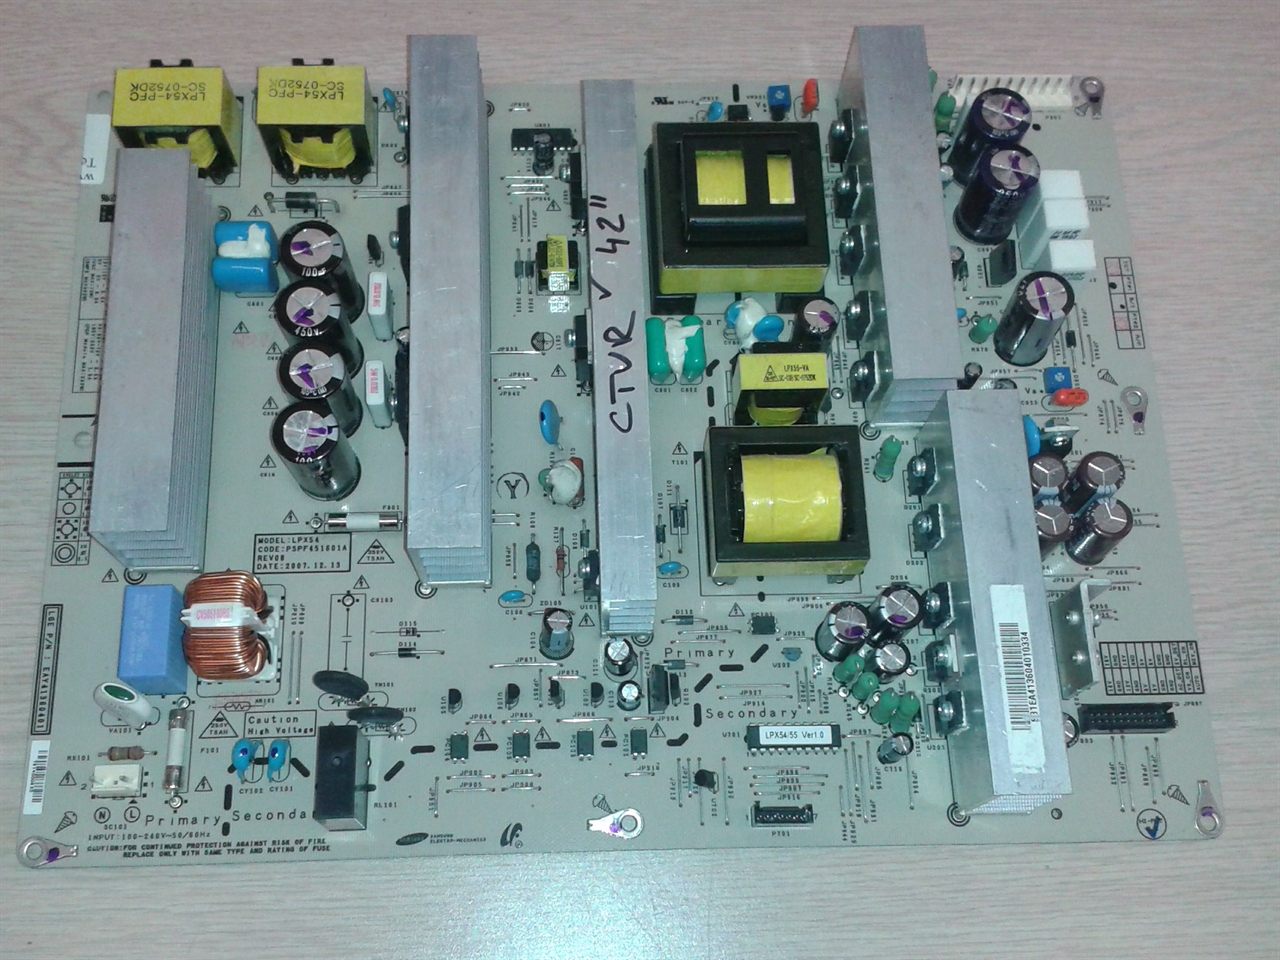 Tv Circuit Board Repair Service Near Me Complete Wiring Diagrams Printed Lg 42pg20 Ua Power Supply Coppell Rh Coppelltvrepair Com Components Parts